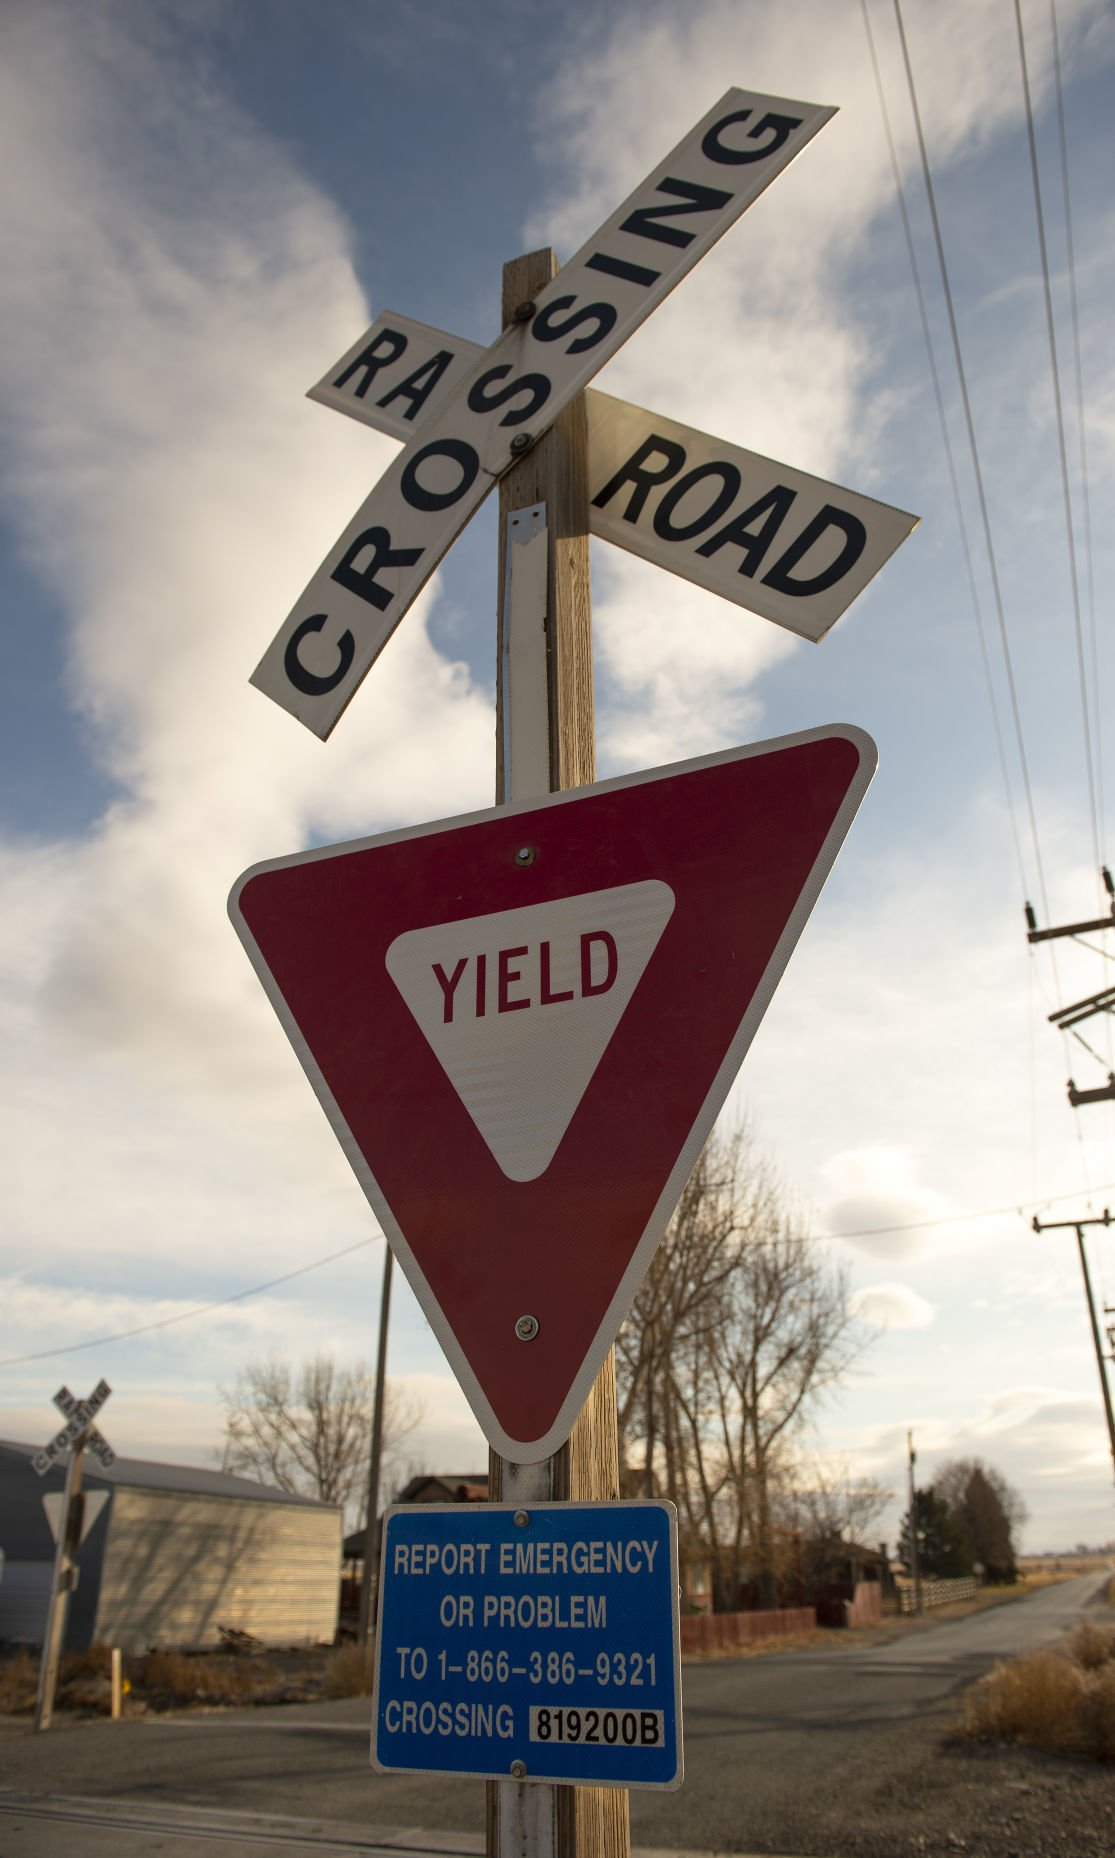 Yielding to stop